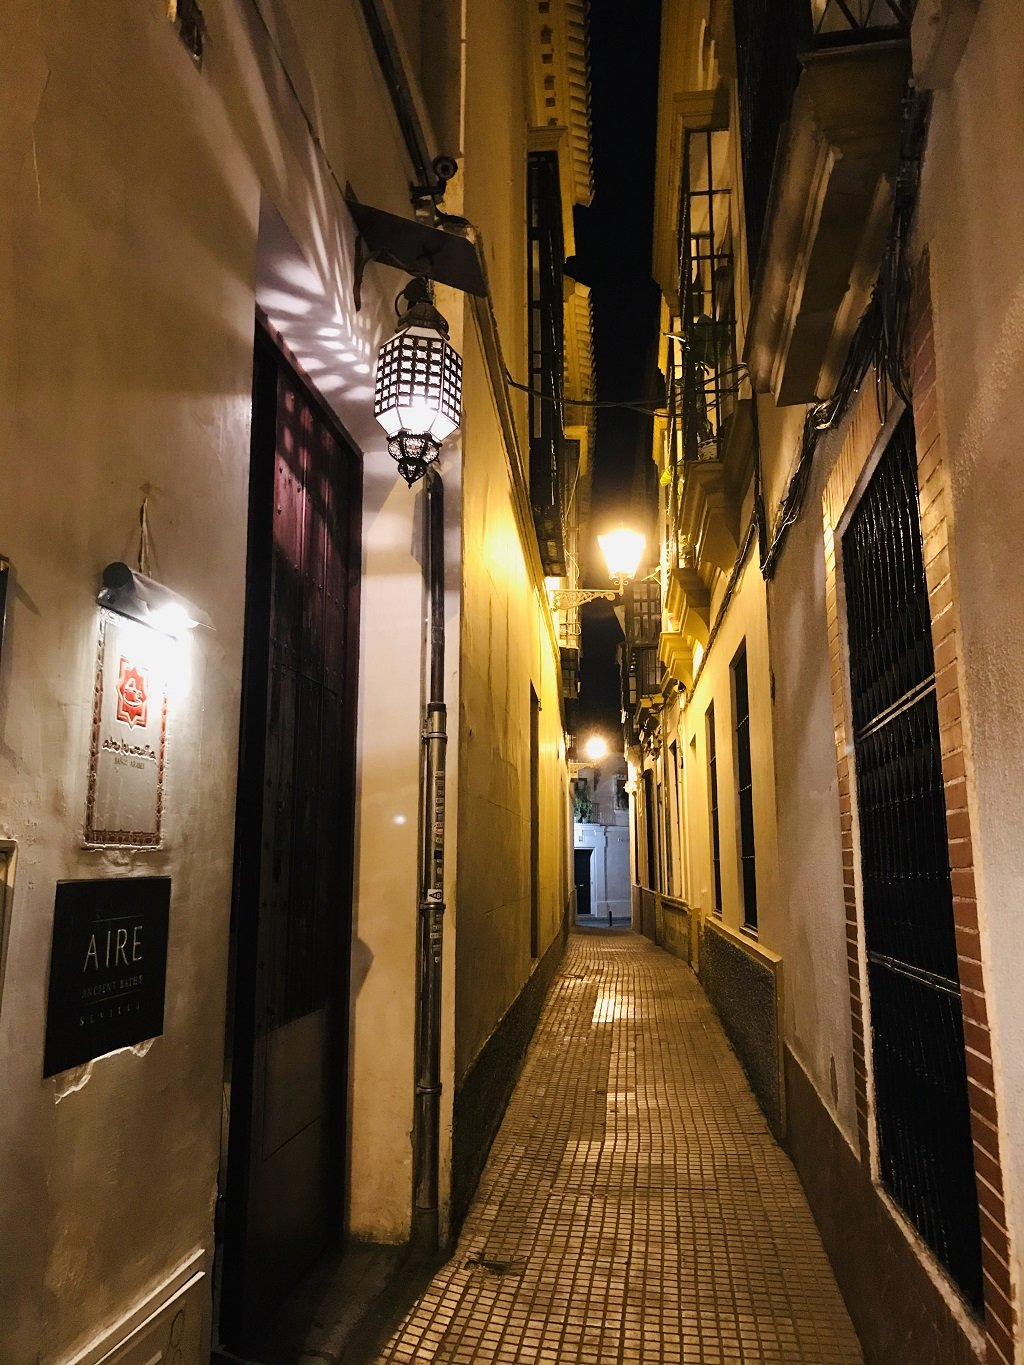 The narrow street leading to Aire Ancient Baths lit up by wall lights at night